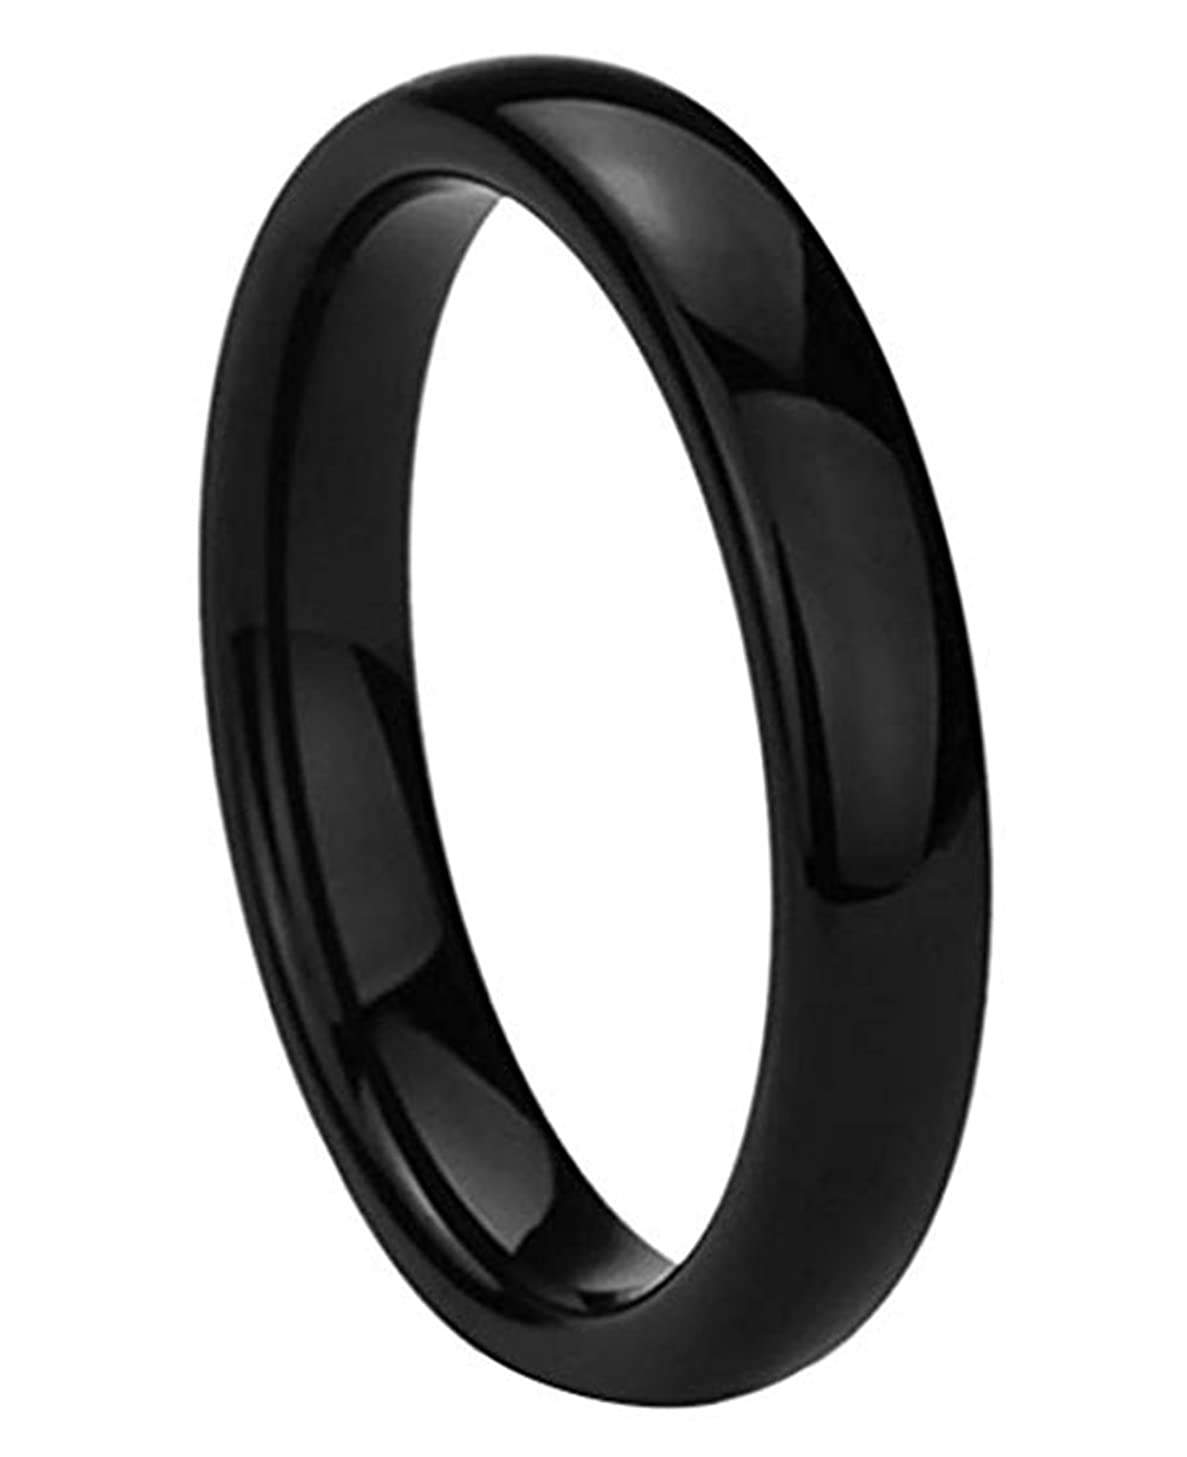 Greendou Fashion Jewelry Stainless Steel Rings Black High Polished Classy Domed Comfort Fit Wedding Bands (9)